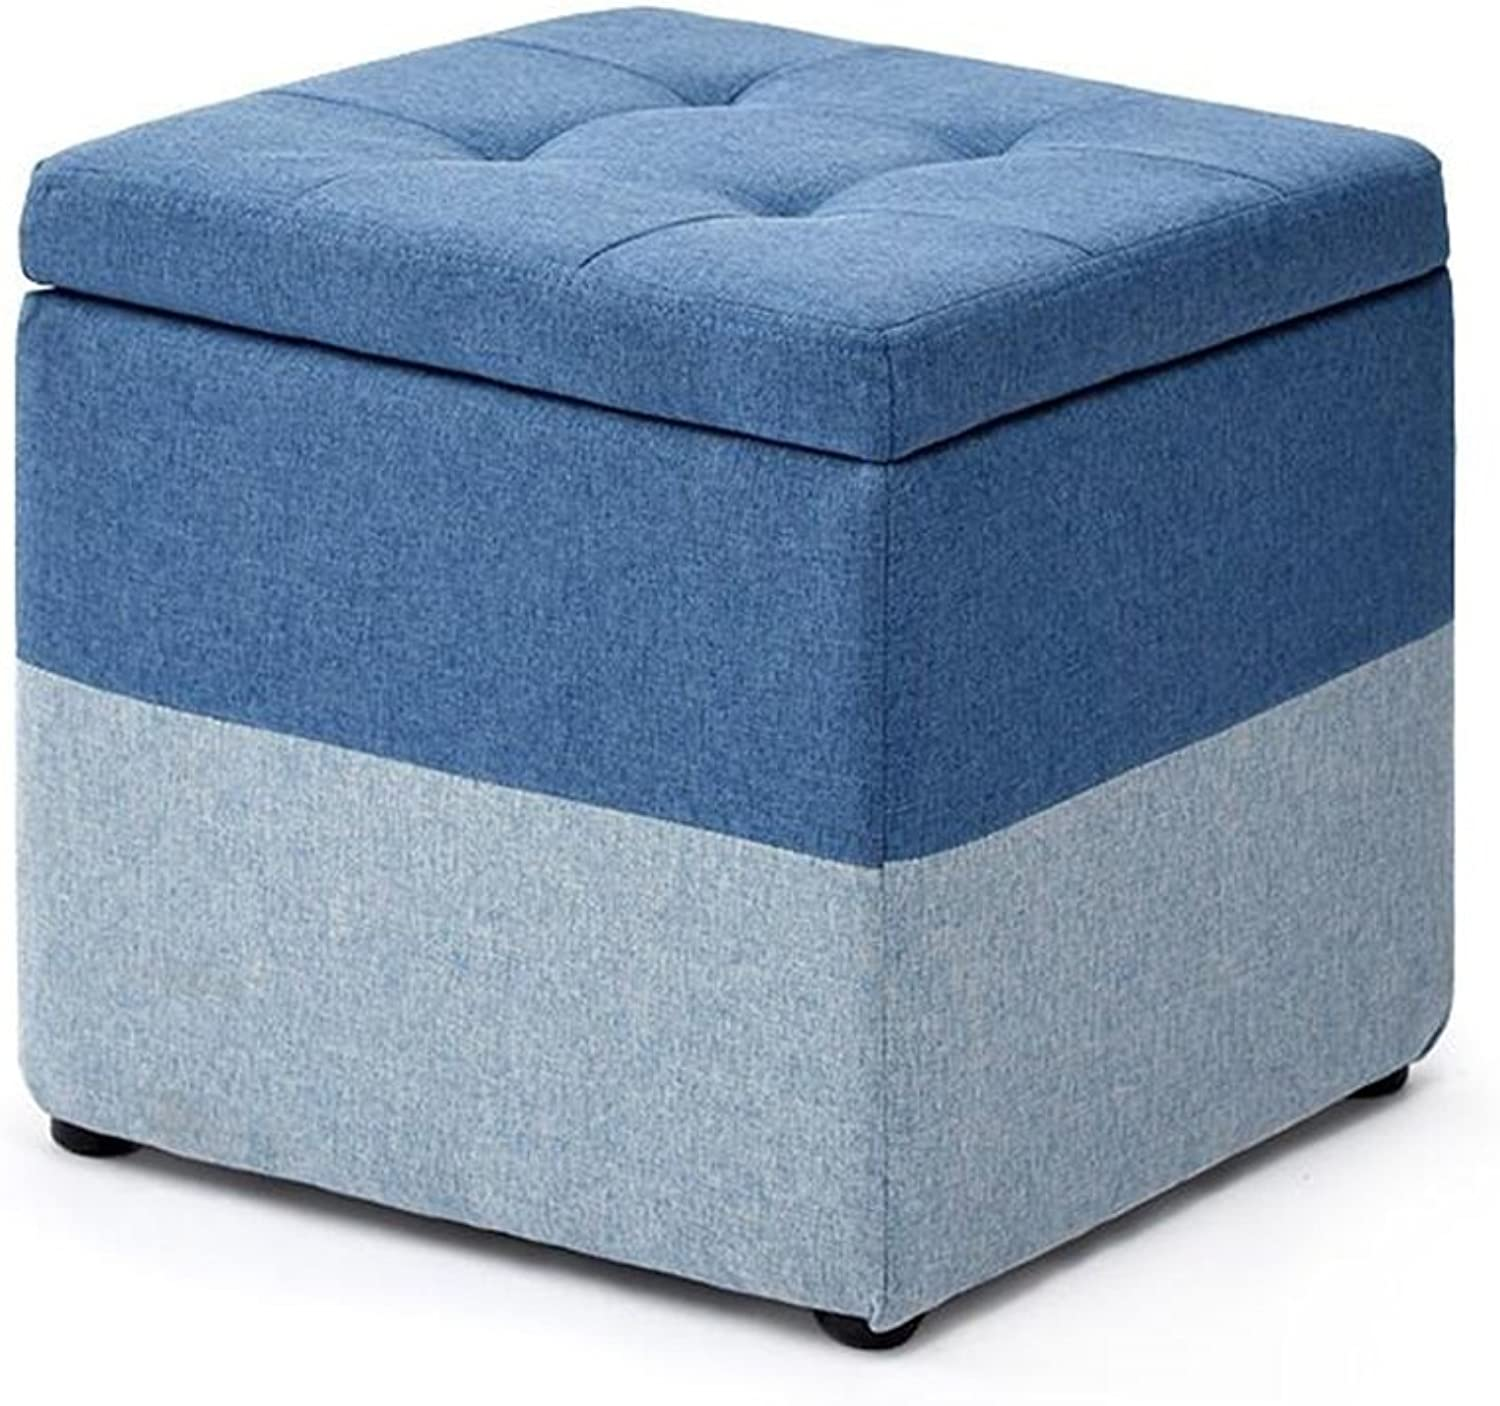 Footstools, Stool Fashion Footstool Simple Storage shoes Bench (color   bluee)